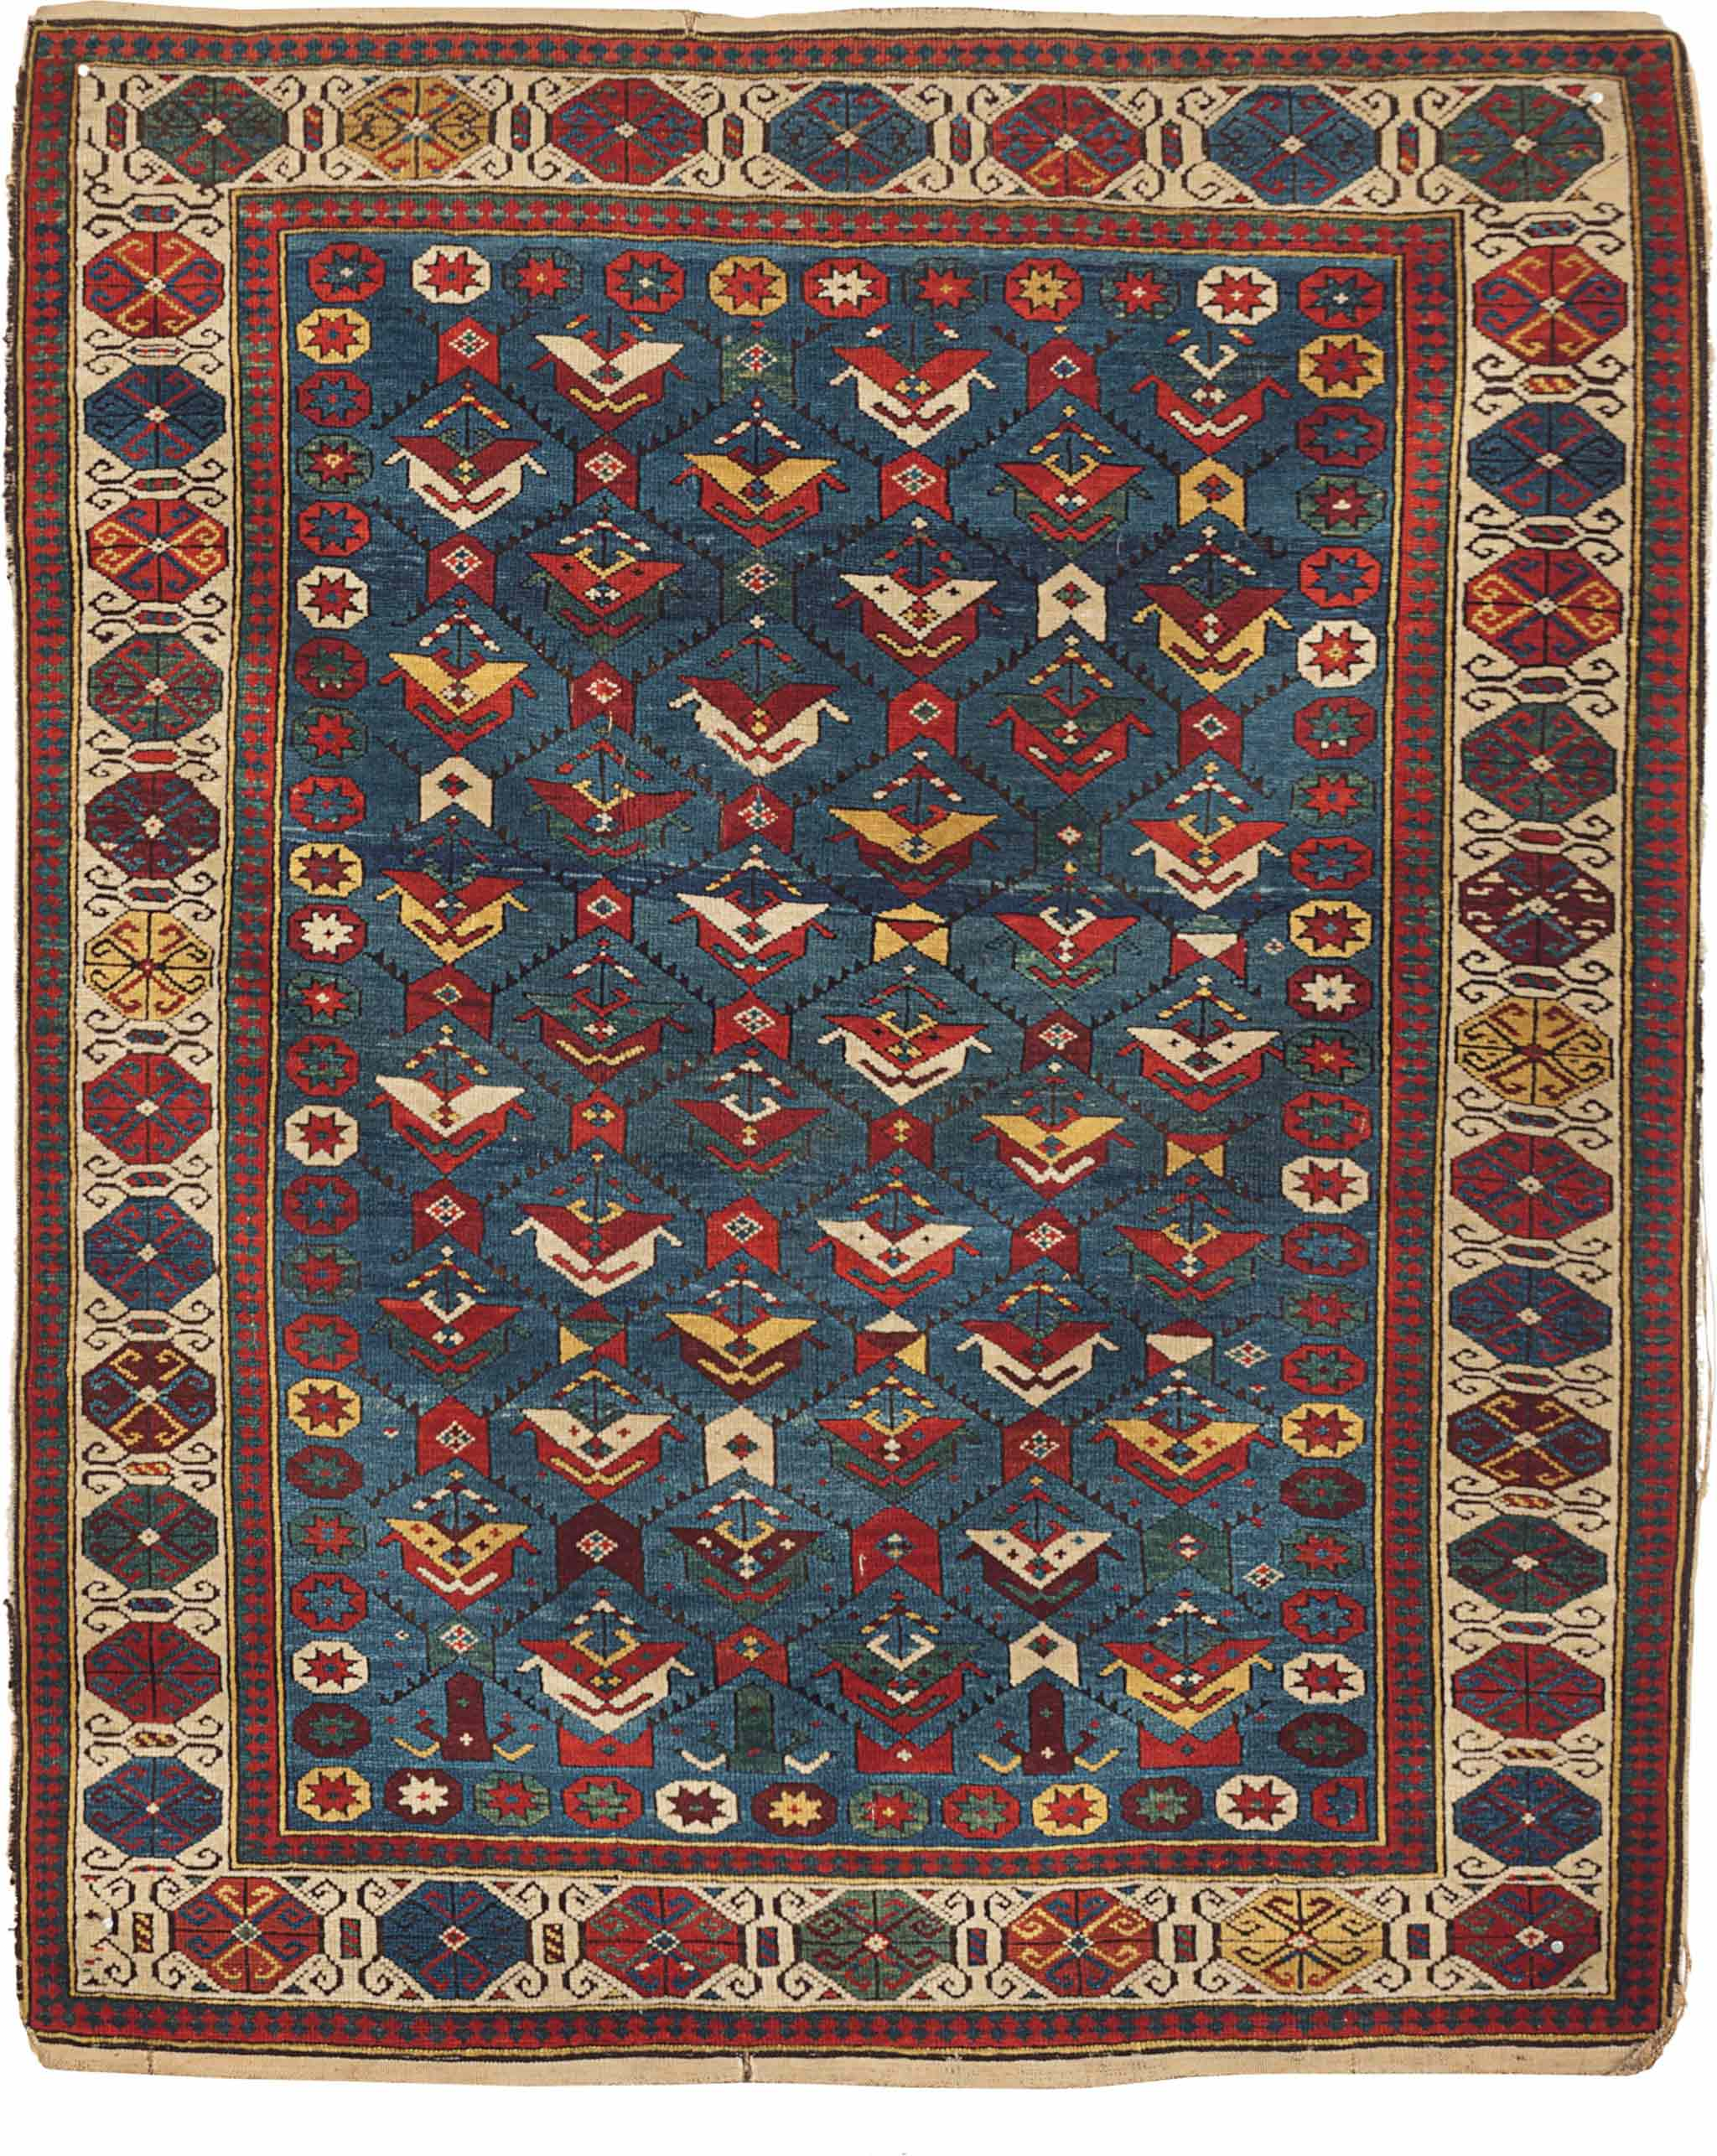 An East Caucasian Kuba Rug, circa 1880, approximately 4 ft. 4 in. x 3 ft. 5 in. Property from the Birmingham Museum of Art. Estimate: $8,000-12,000 (USD), Sold 31 March 2016, for $8,125 (USD).